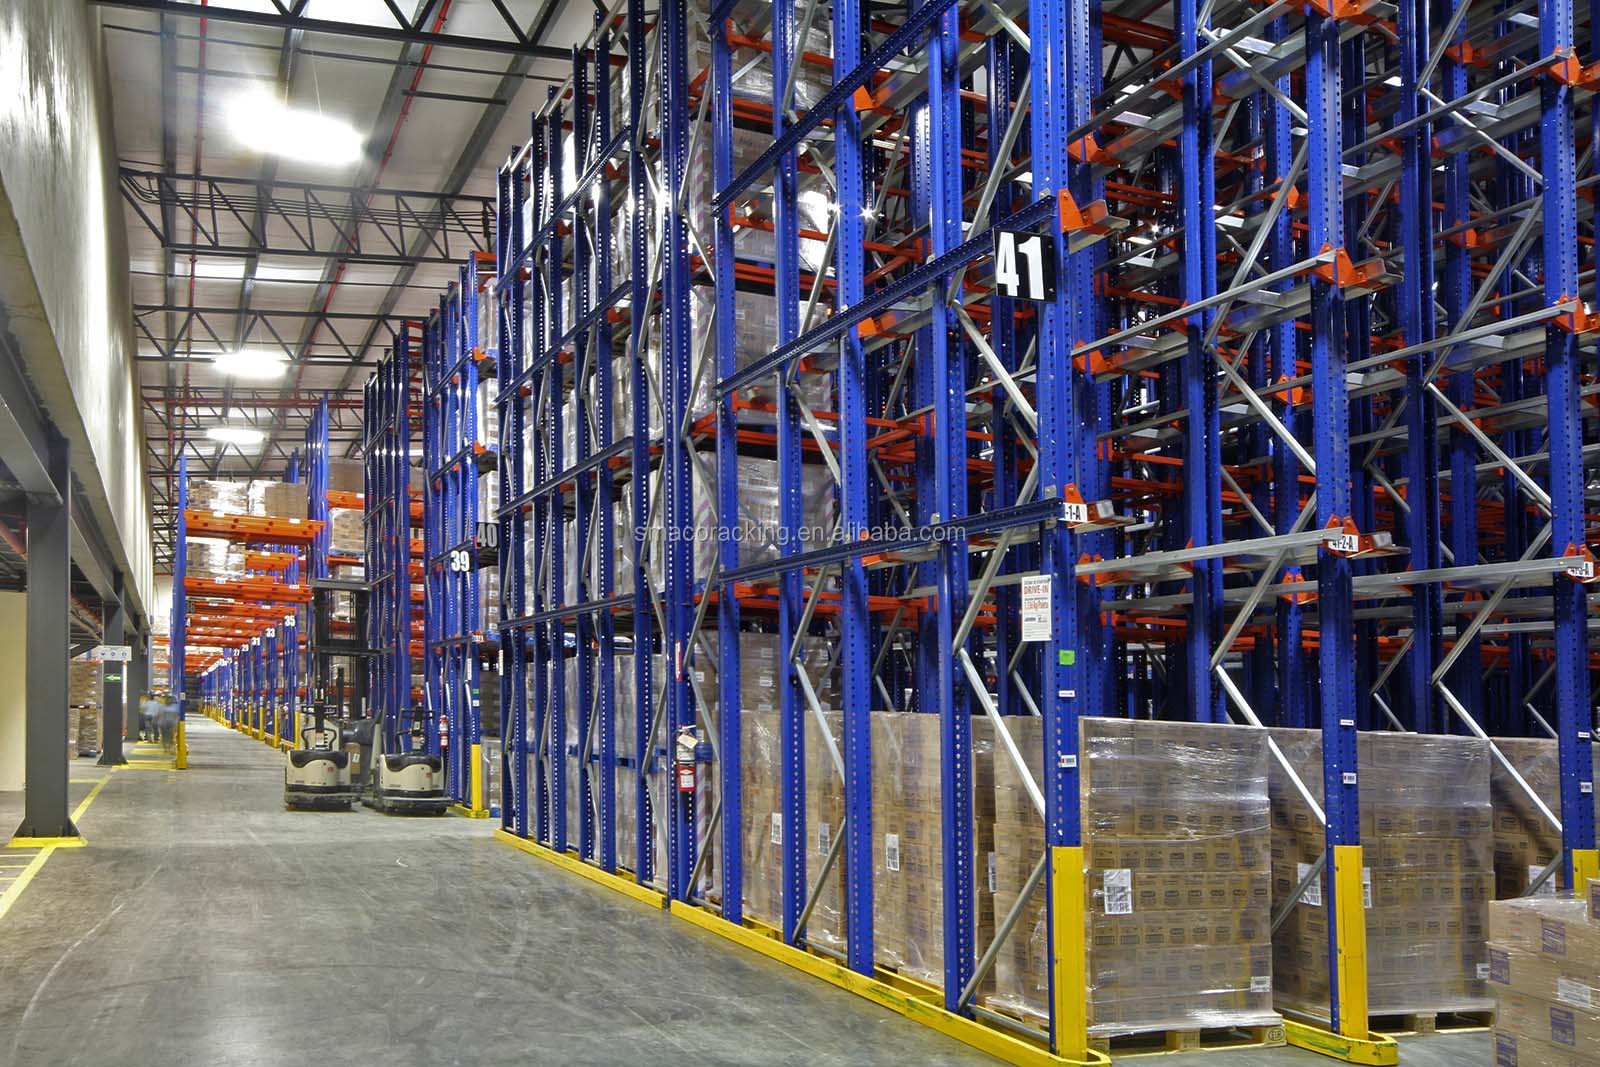 Automated Storage And Retrieval System , 45m Industrial Warehouse Shelving Racks